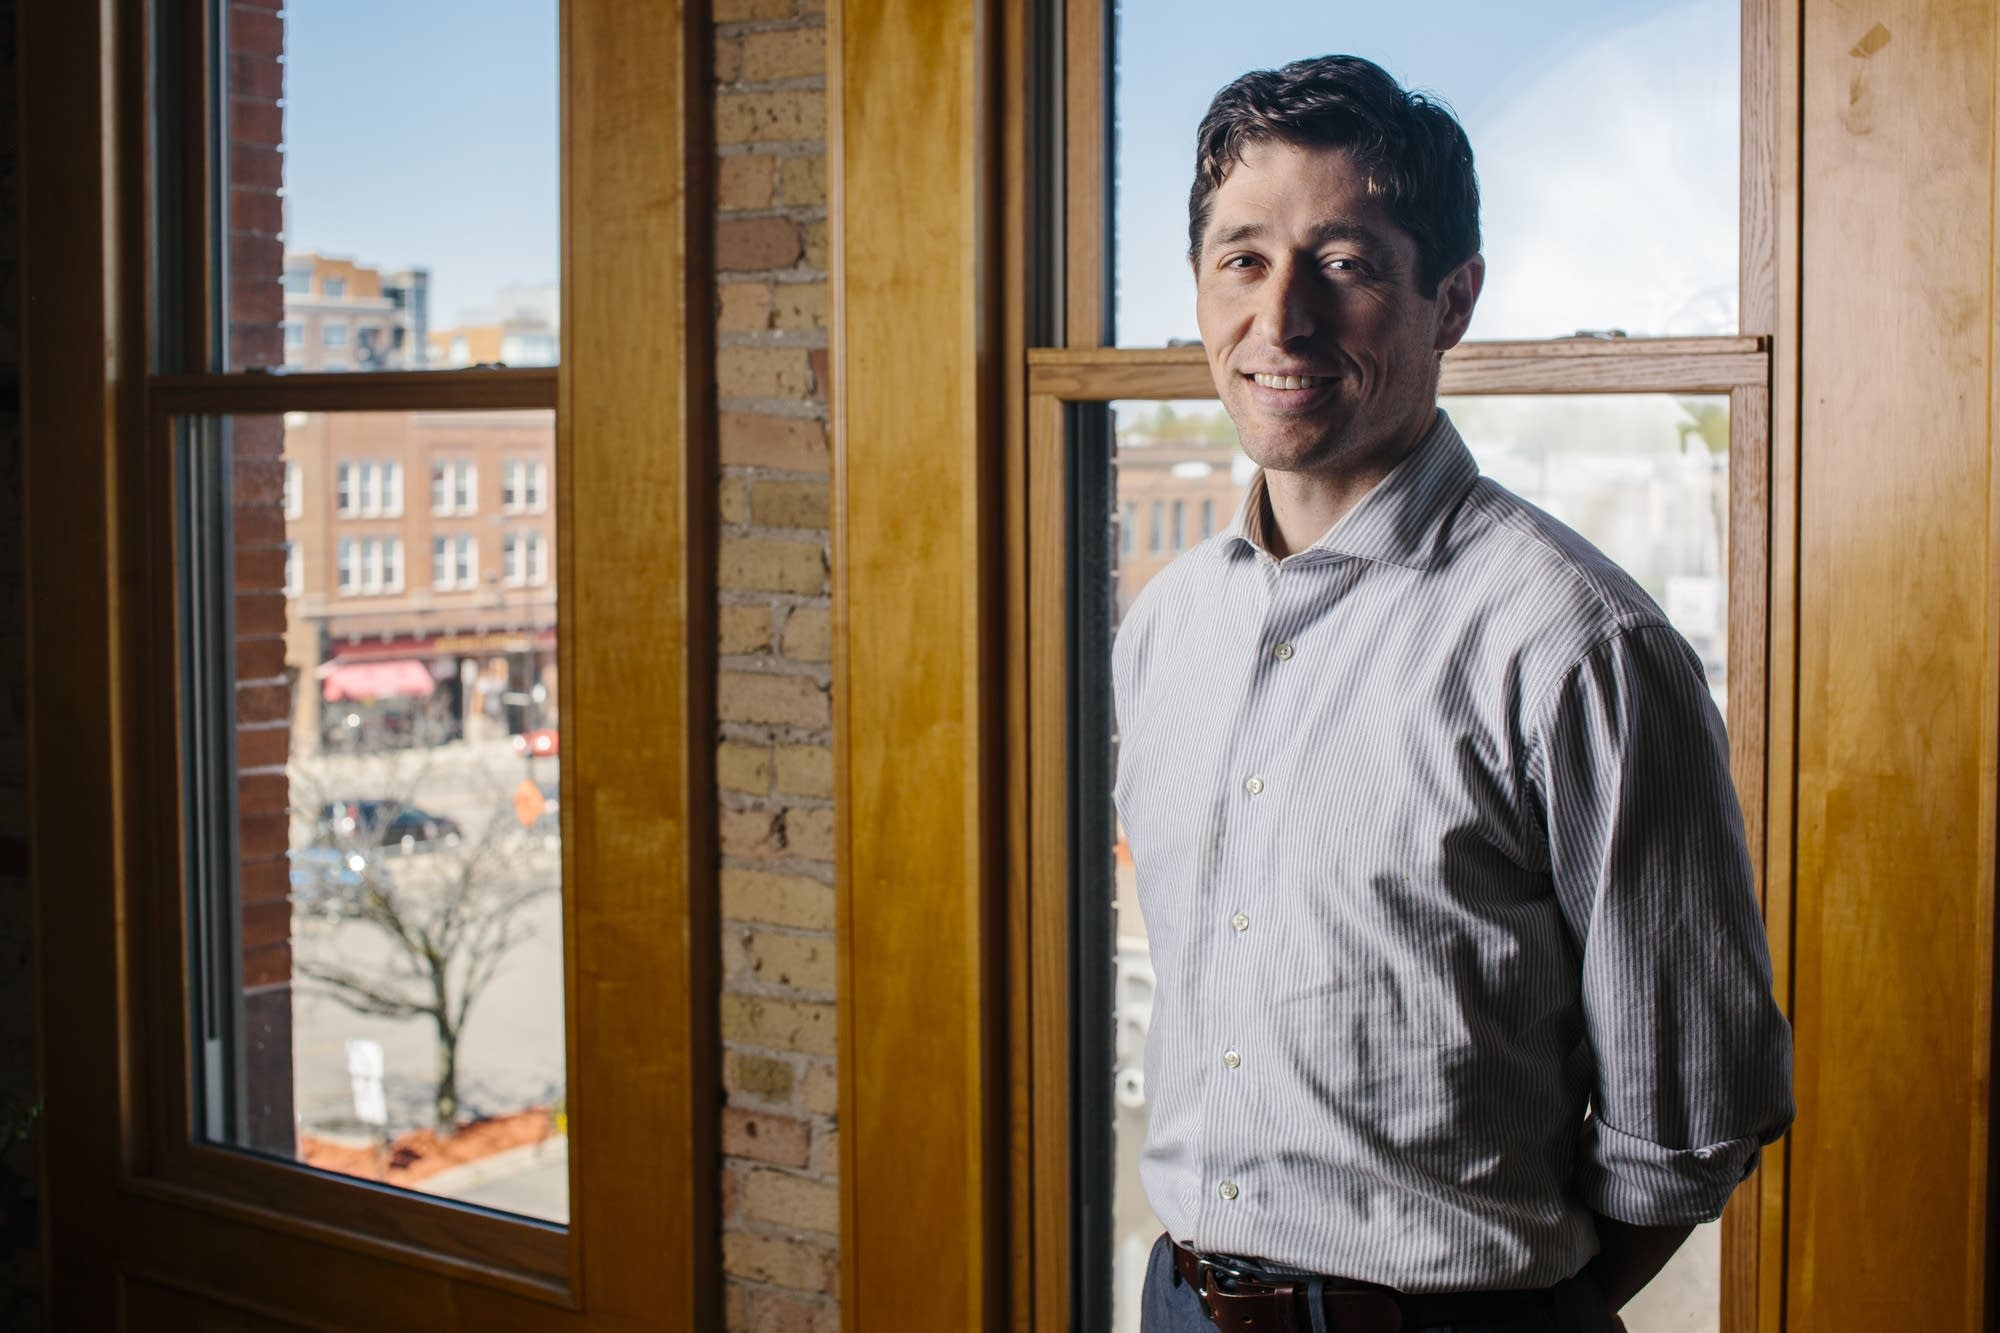 Minneapolis mayoral candidate Jacob Frey.